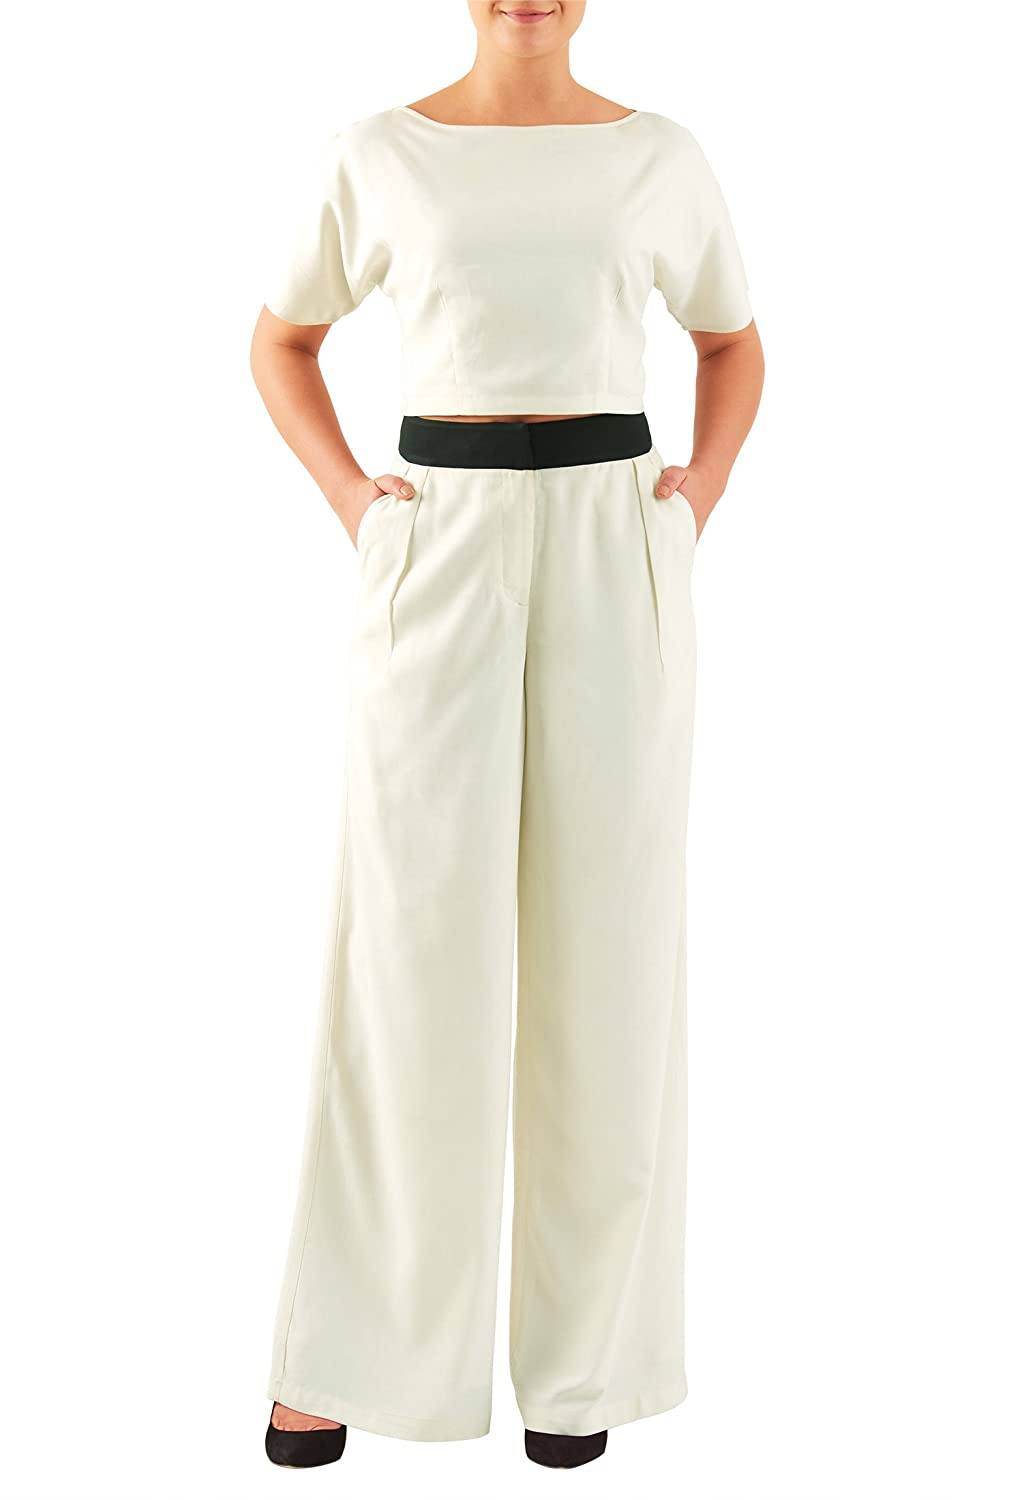 1930s Women's Pants and Beach Pajamas Sandwash silk palazzo pants and top set $99.95 AT vintagedancer.com